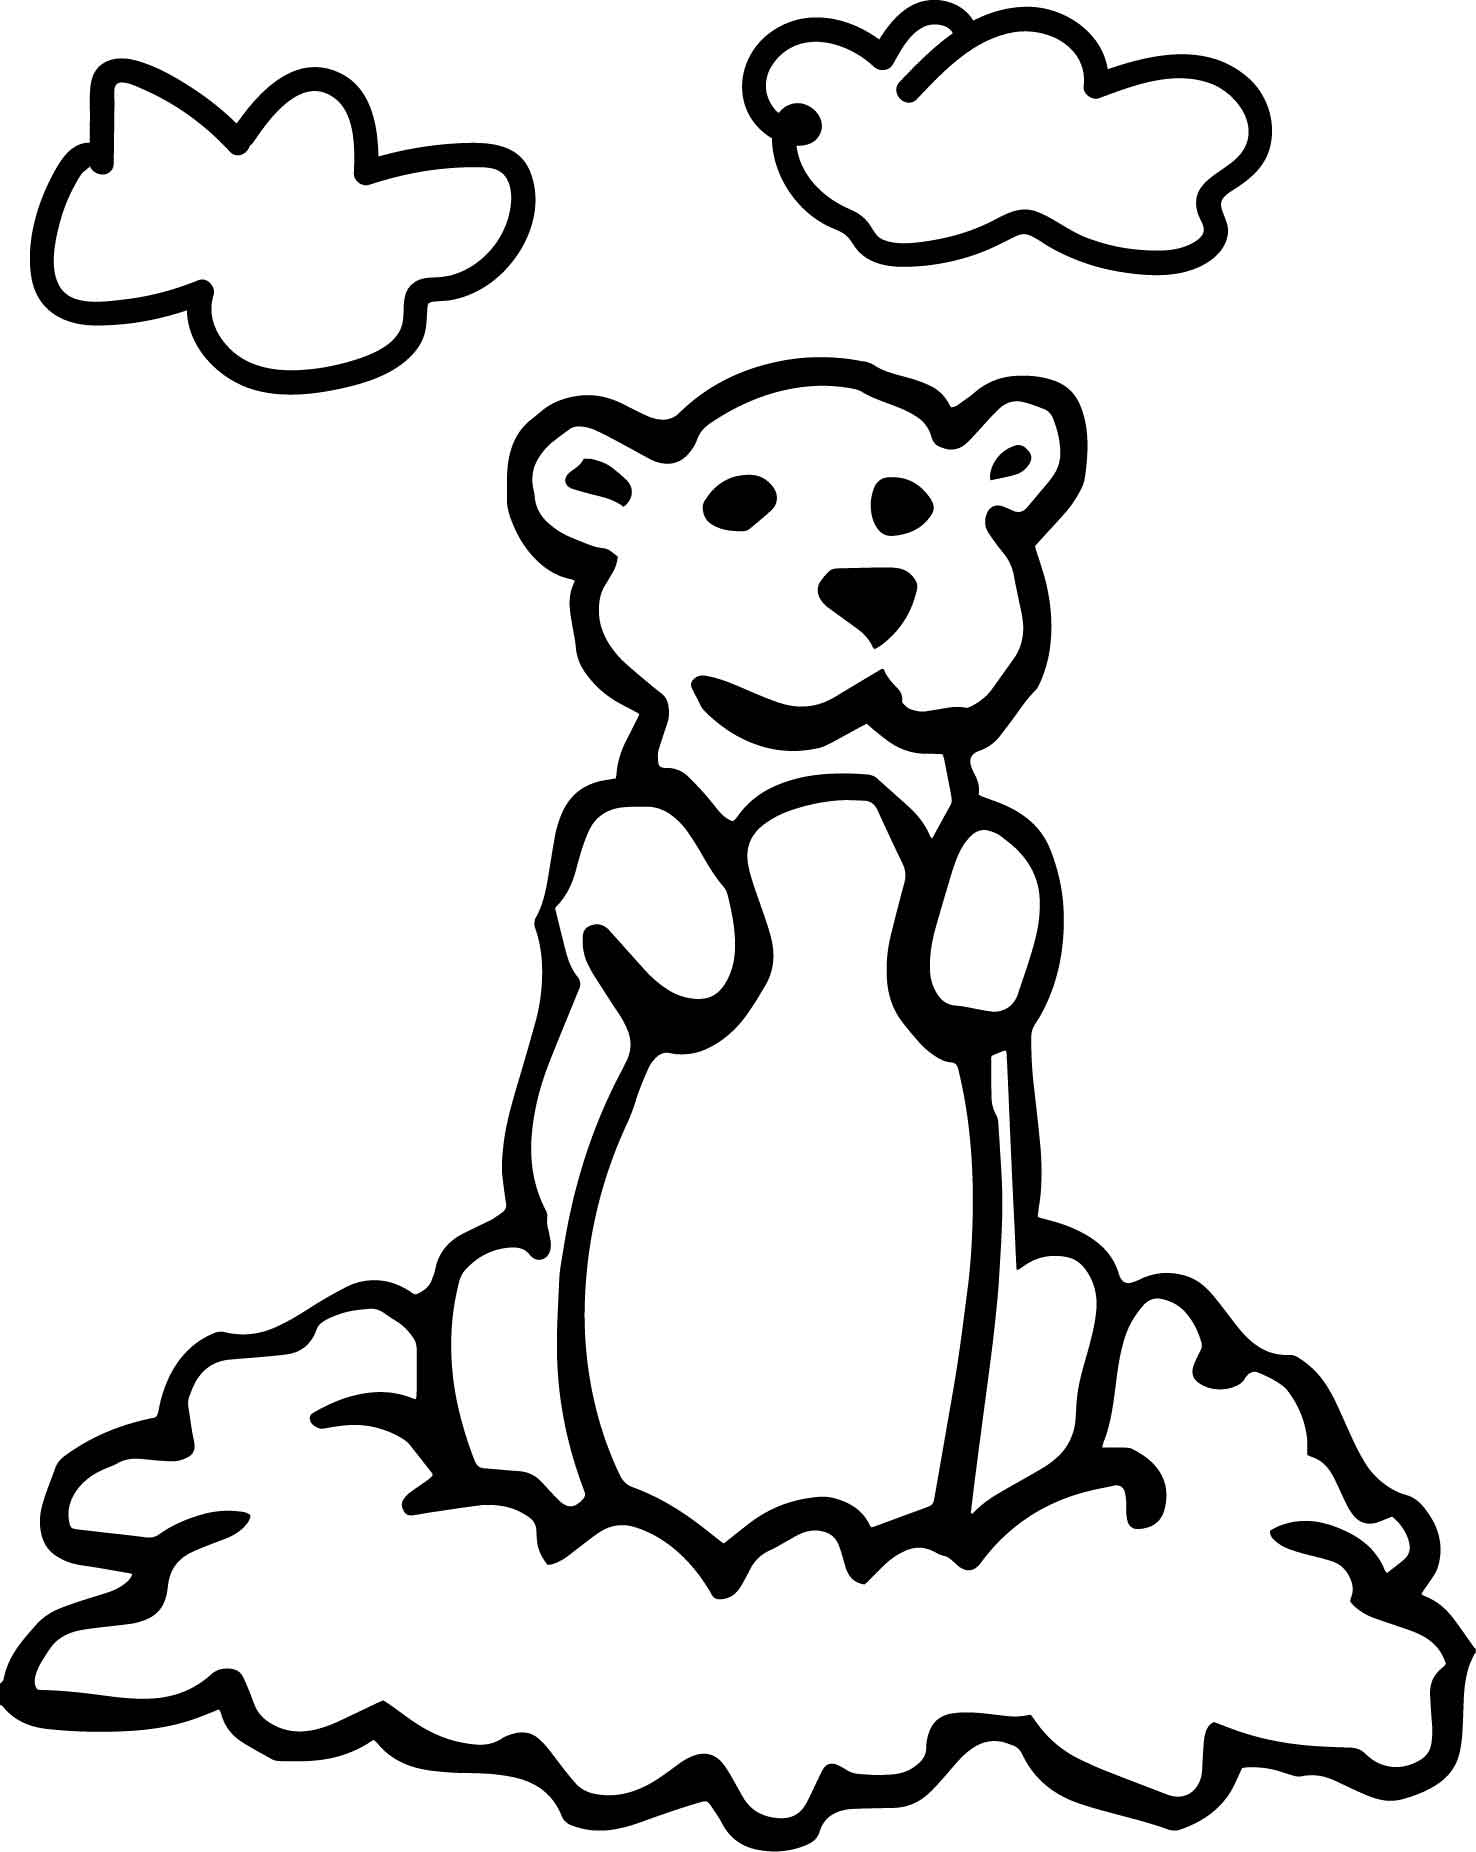 Basic cartoon groundhog day coloring page for Ground hog coloring page